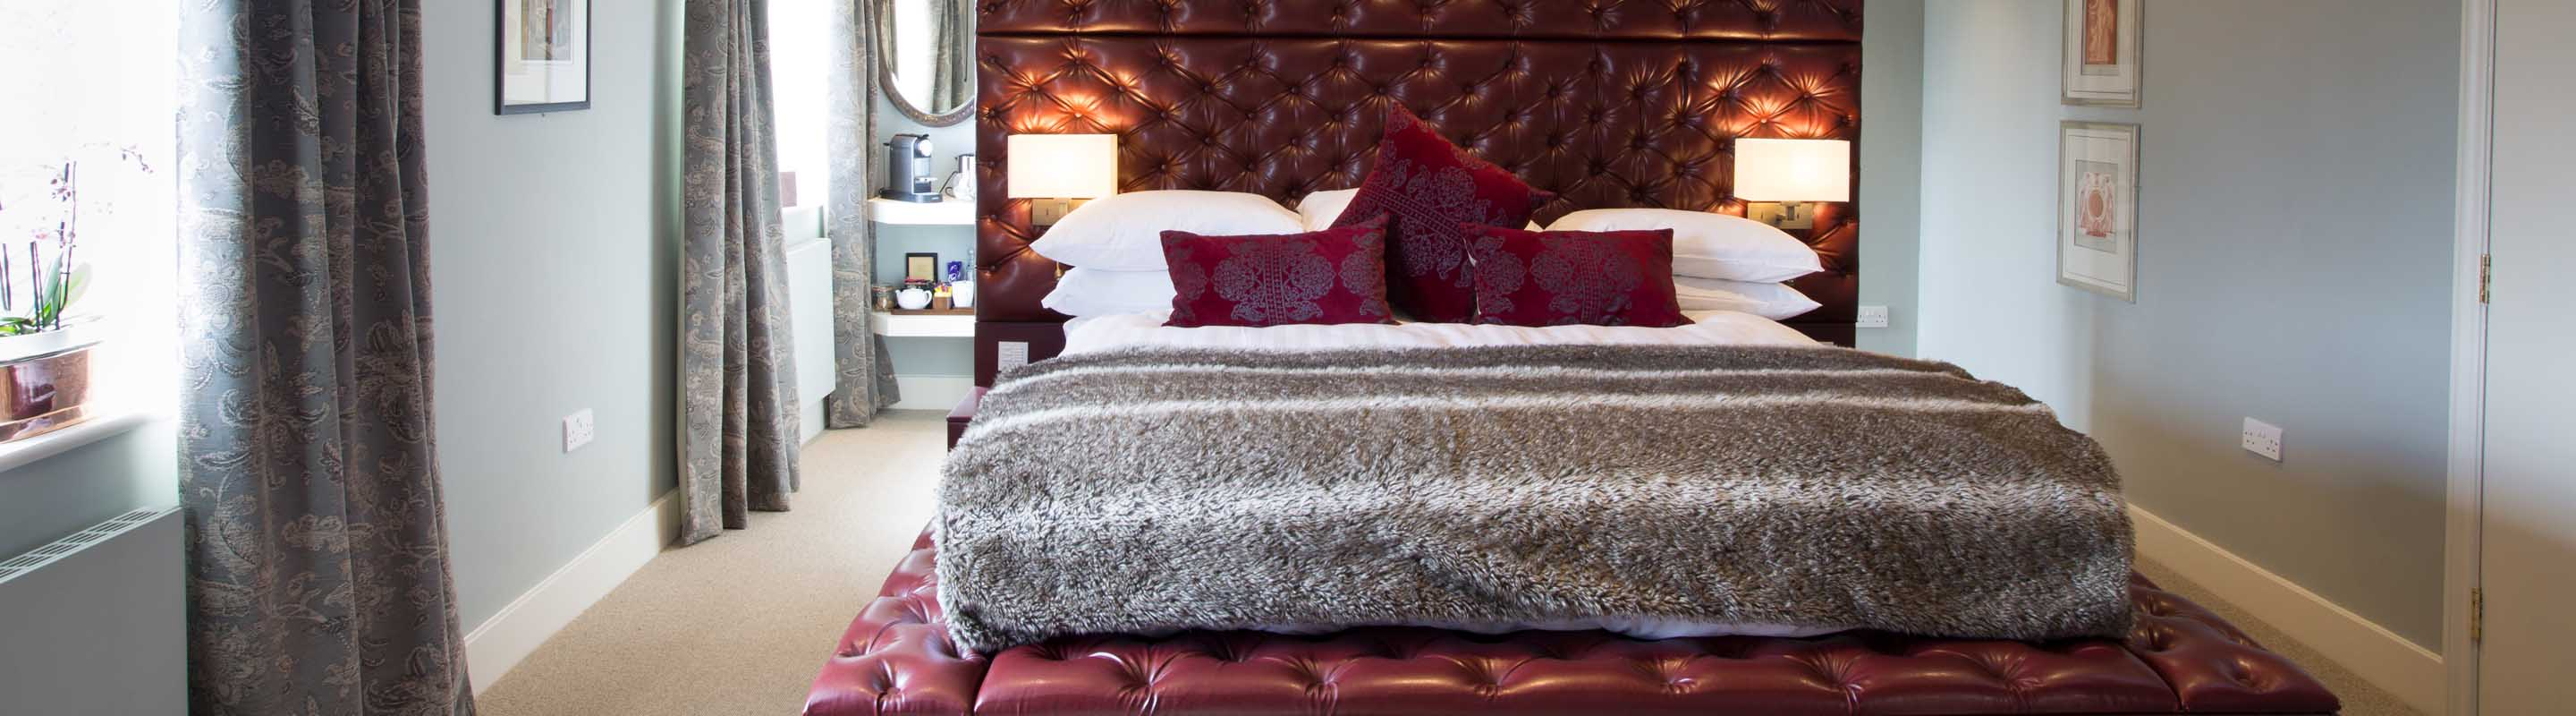 Stable Suite at the Crown Hotel Norfolk - Luxury Accommodation on the north Norfolk Coast